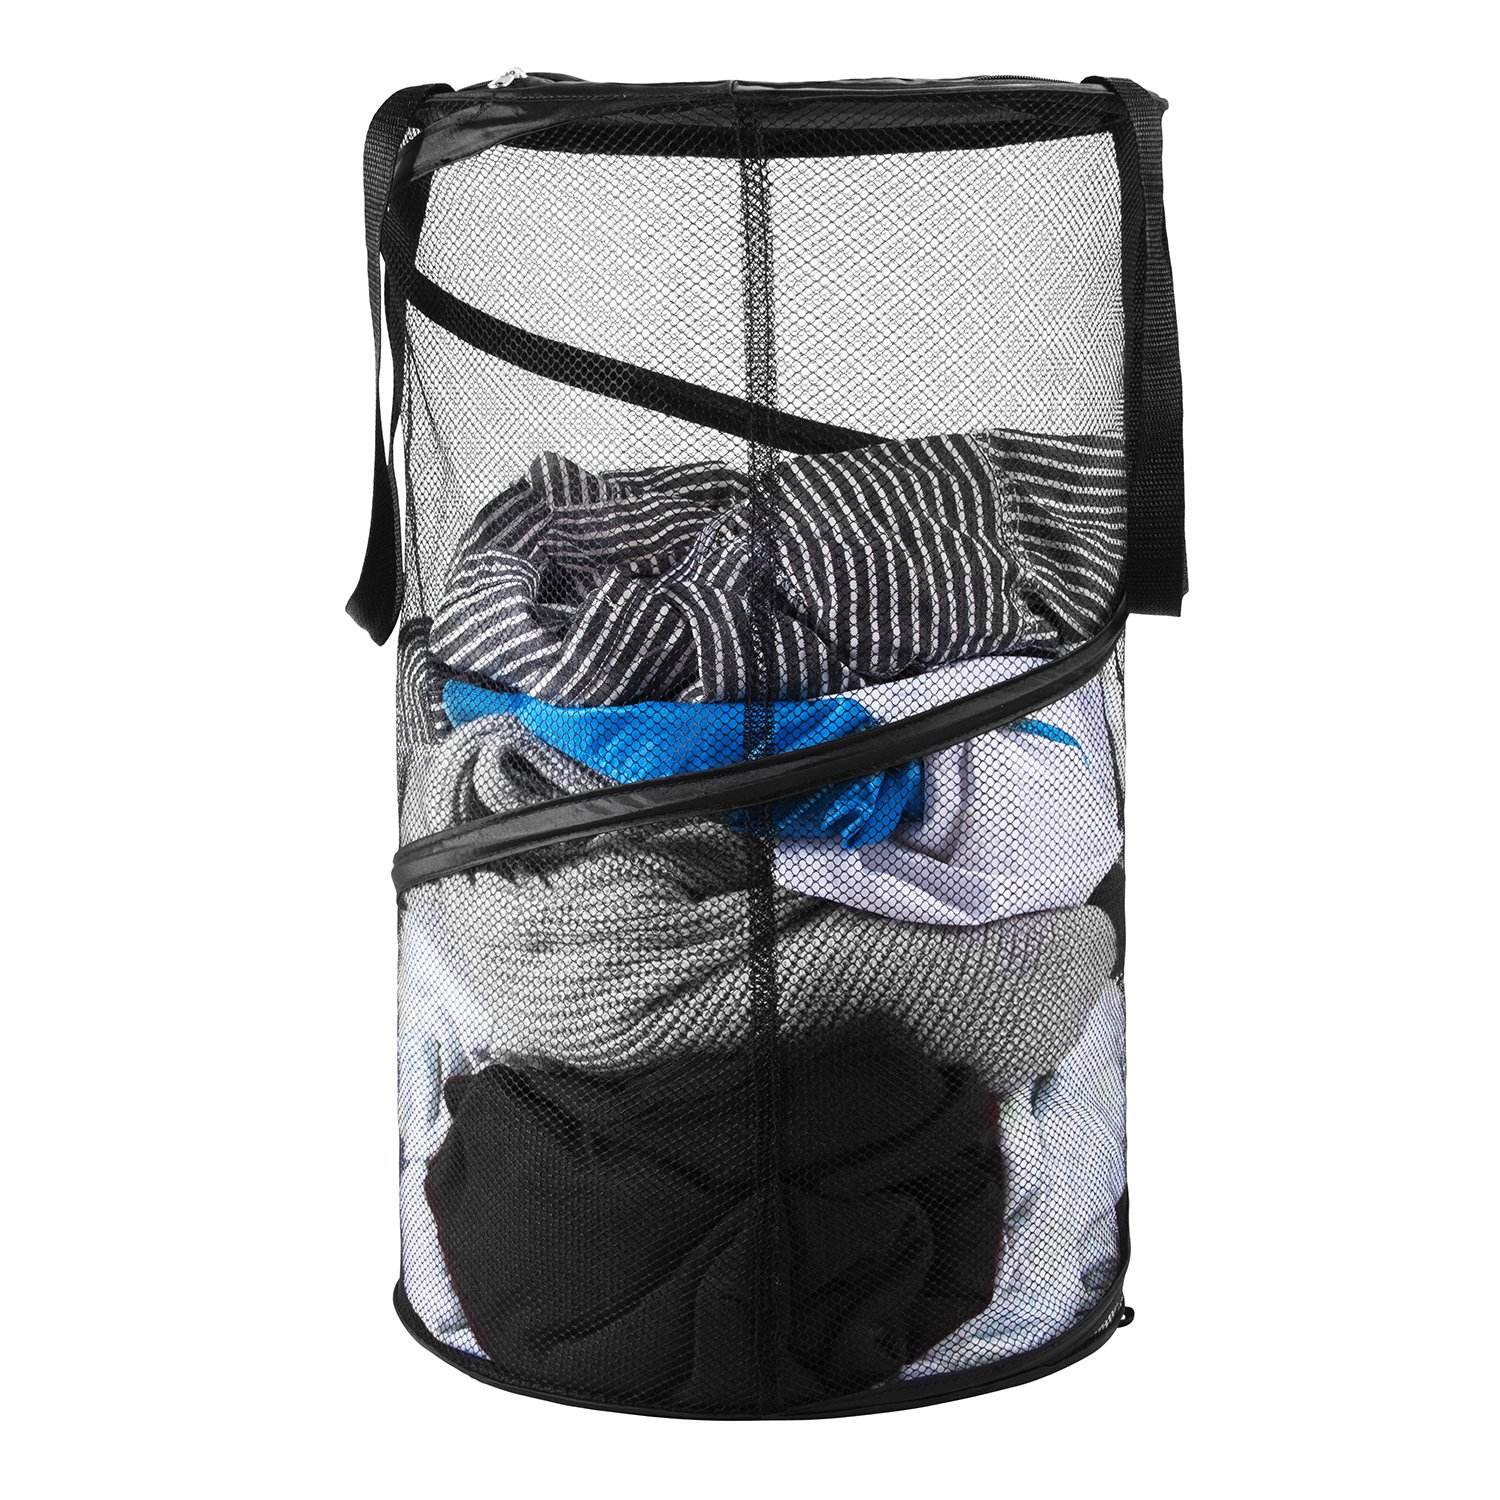 Kyle Bernard Pop-Up Mesh Laundry Hamper, Foldable Collapsible Laundry Basket with Handles and Lid for Dirty Clothes, Baby Accessories Toys, Sporting Goods